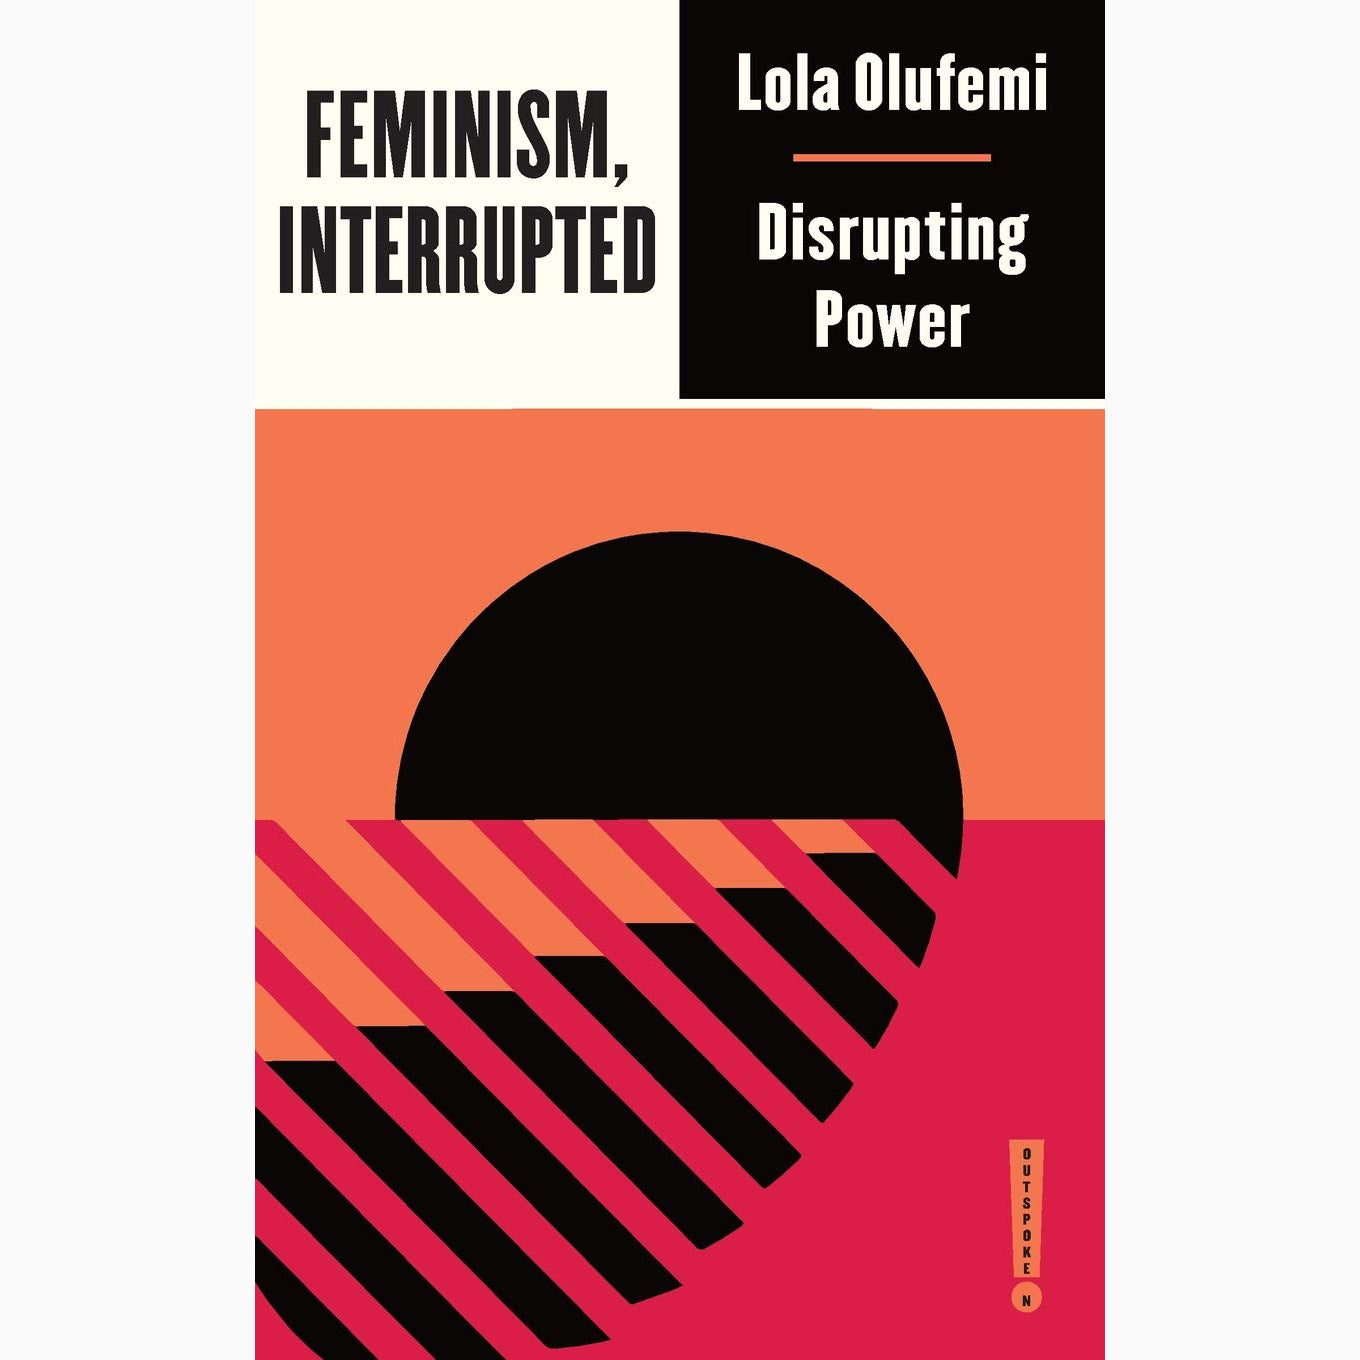 Feminism interrupted cover by Lola Olufemi